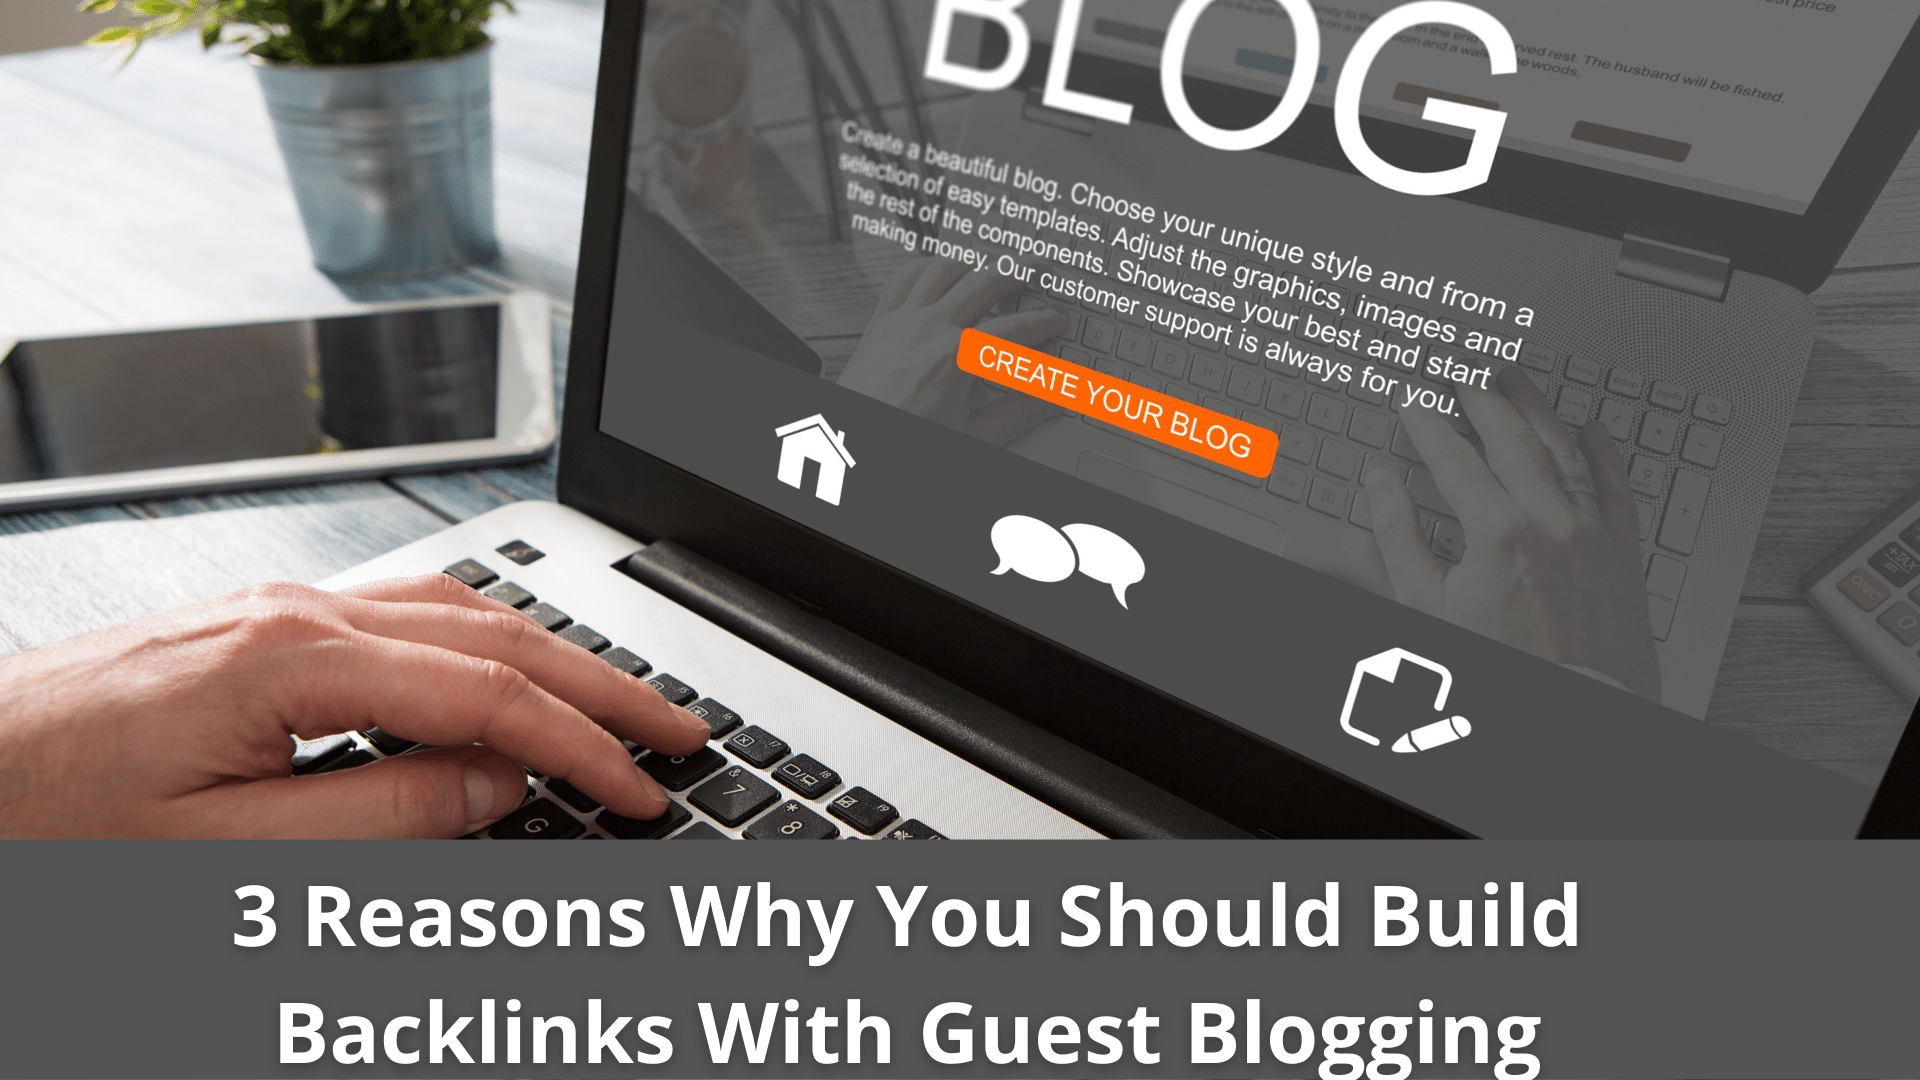 3 Reasons Why You Should Build Backlinks With Guest Blogging 41